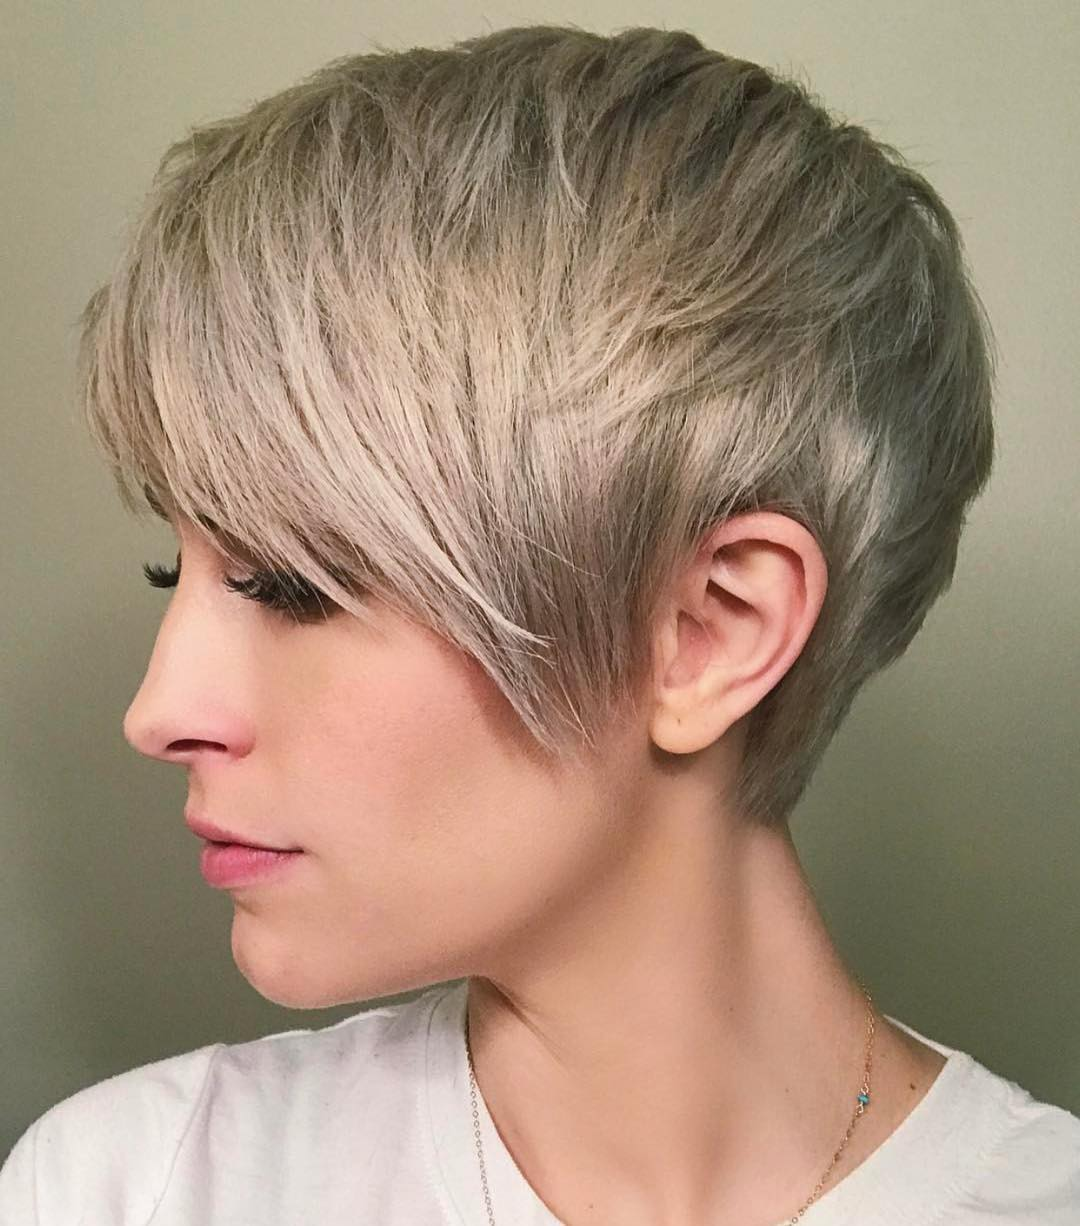 Textured mid-ash-blonde short straight hairstyle